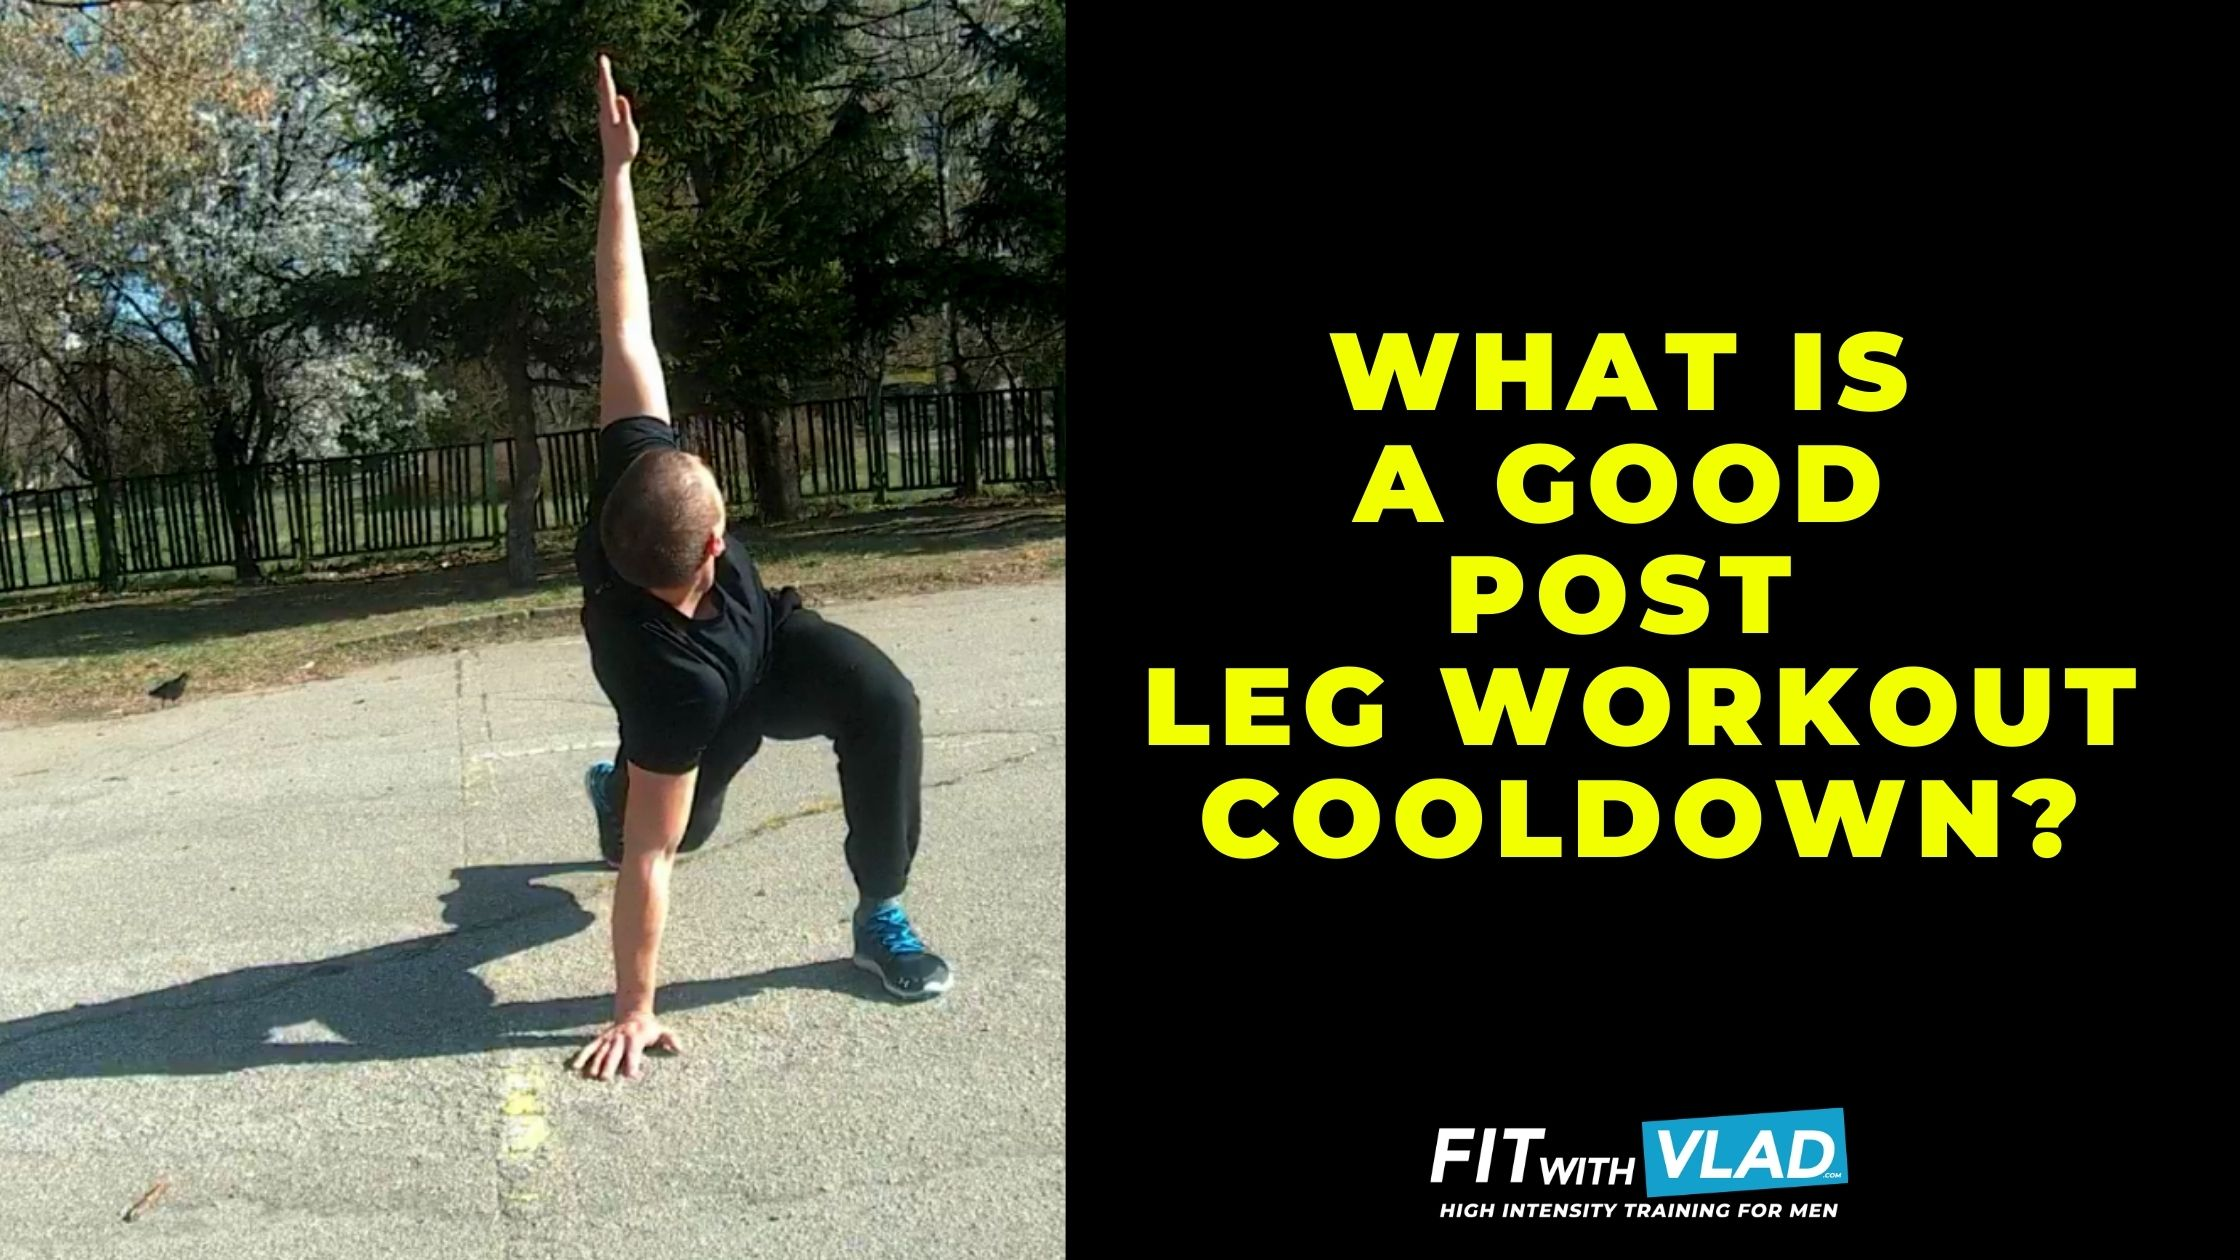 What Is a Good Stretching and Cooldown To Do After Leg Workout